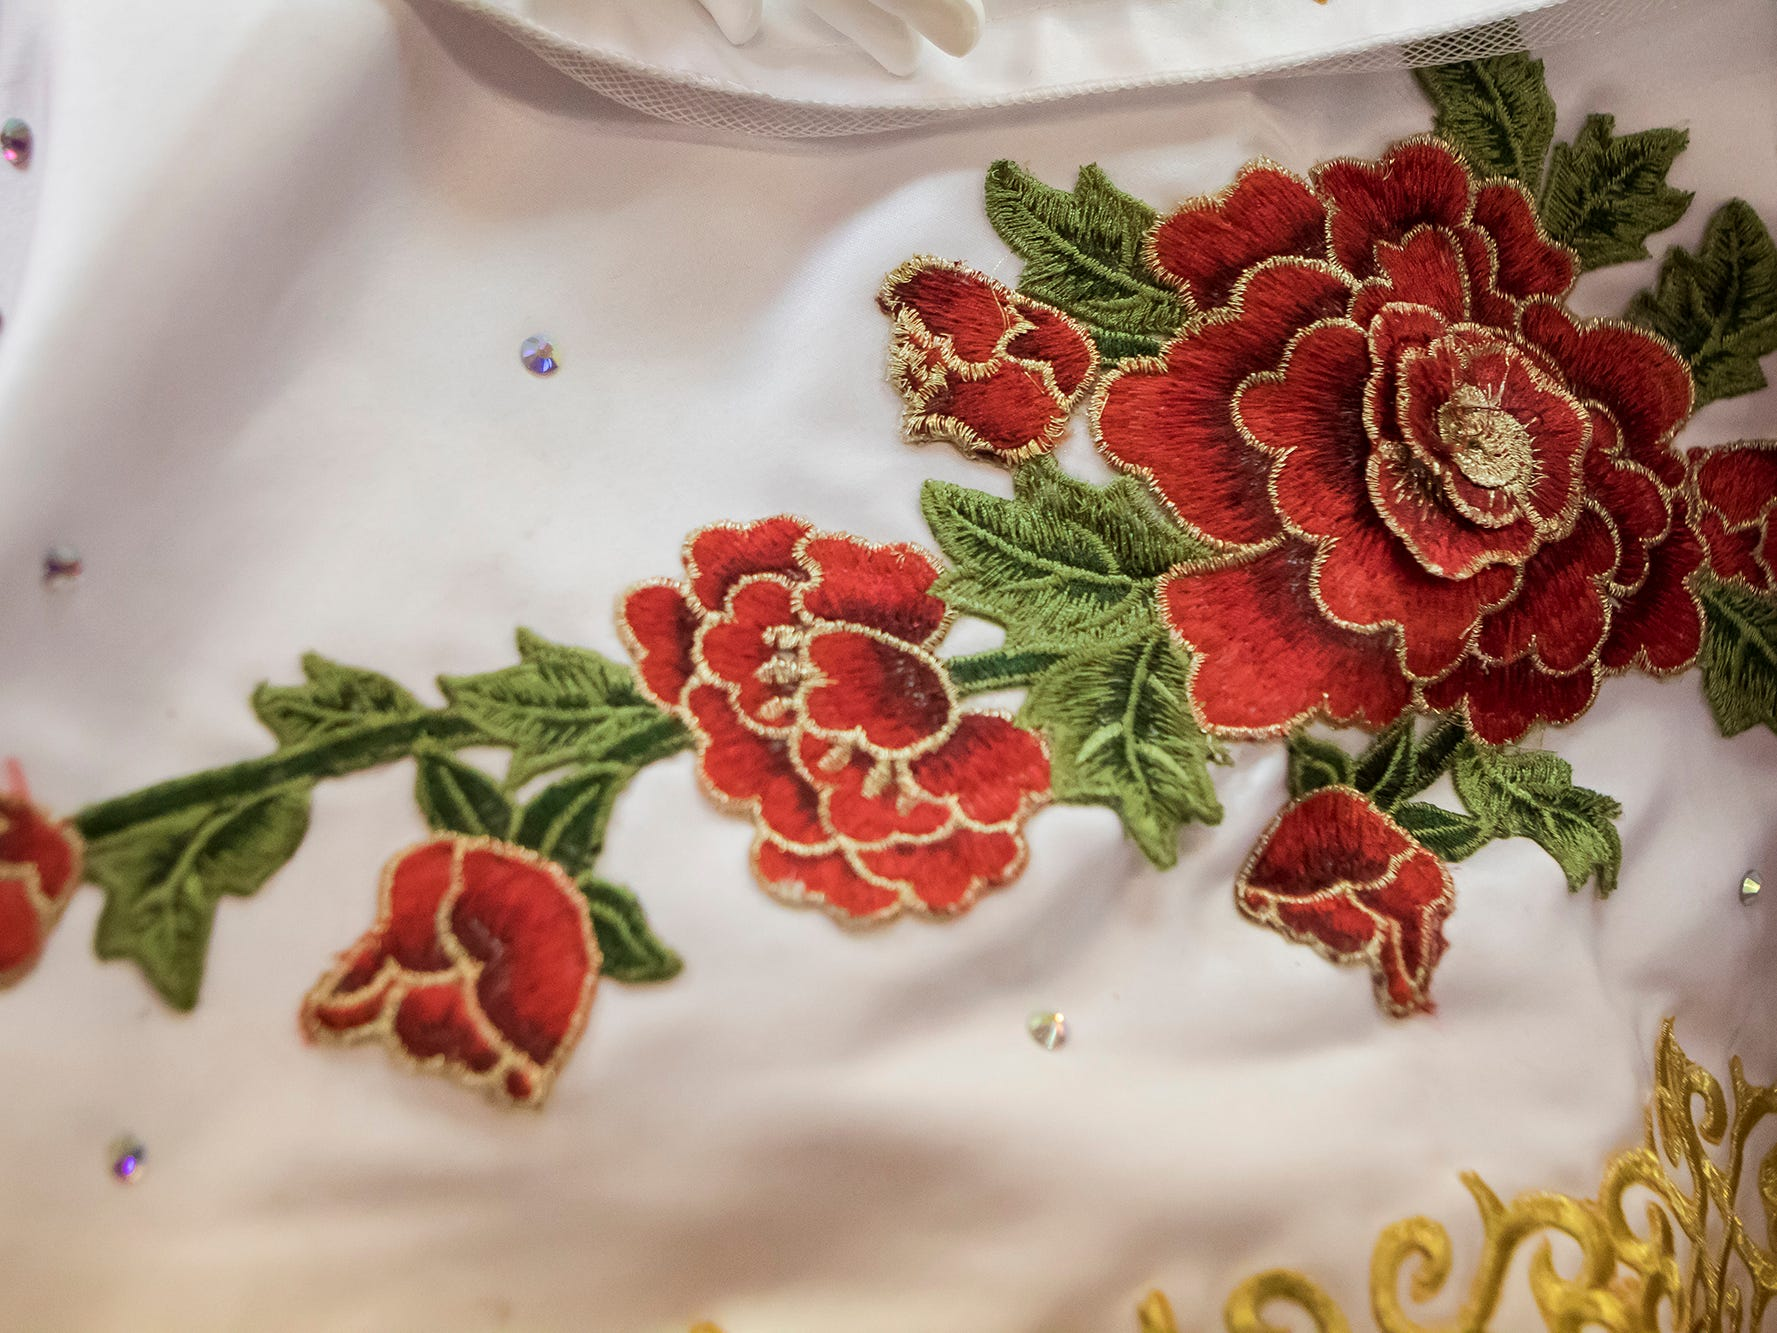 Detail of one of the stitched floral pieces on Maria Gonzalez's quinceañera dress, which is on display at the Union Museum of History and Art in Farmerville, La. as part of an exhibit highlighting Hispanic culture in Union Parish on Feb. 7. Quinceañeras are traditional celebrations for 15 year old girls to signify their transition into womanhood.